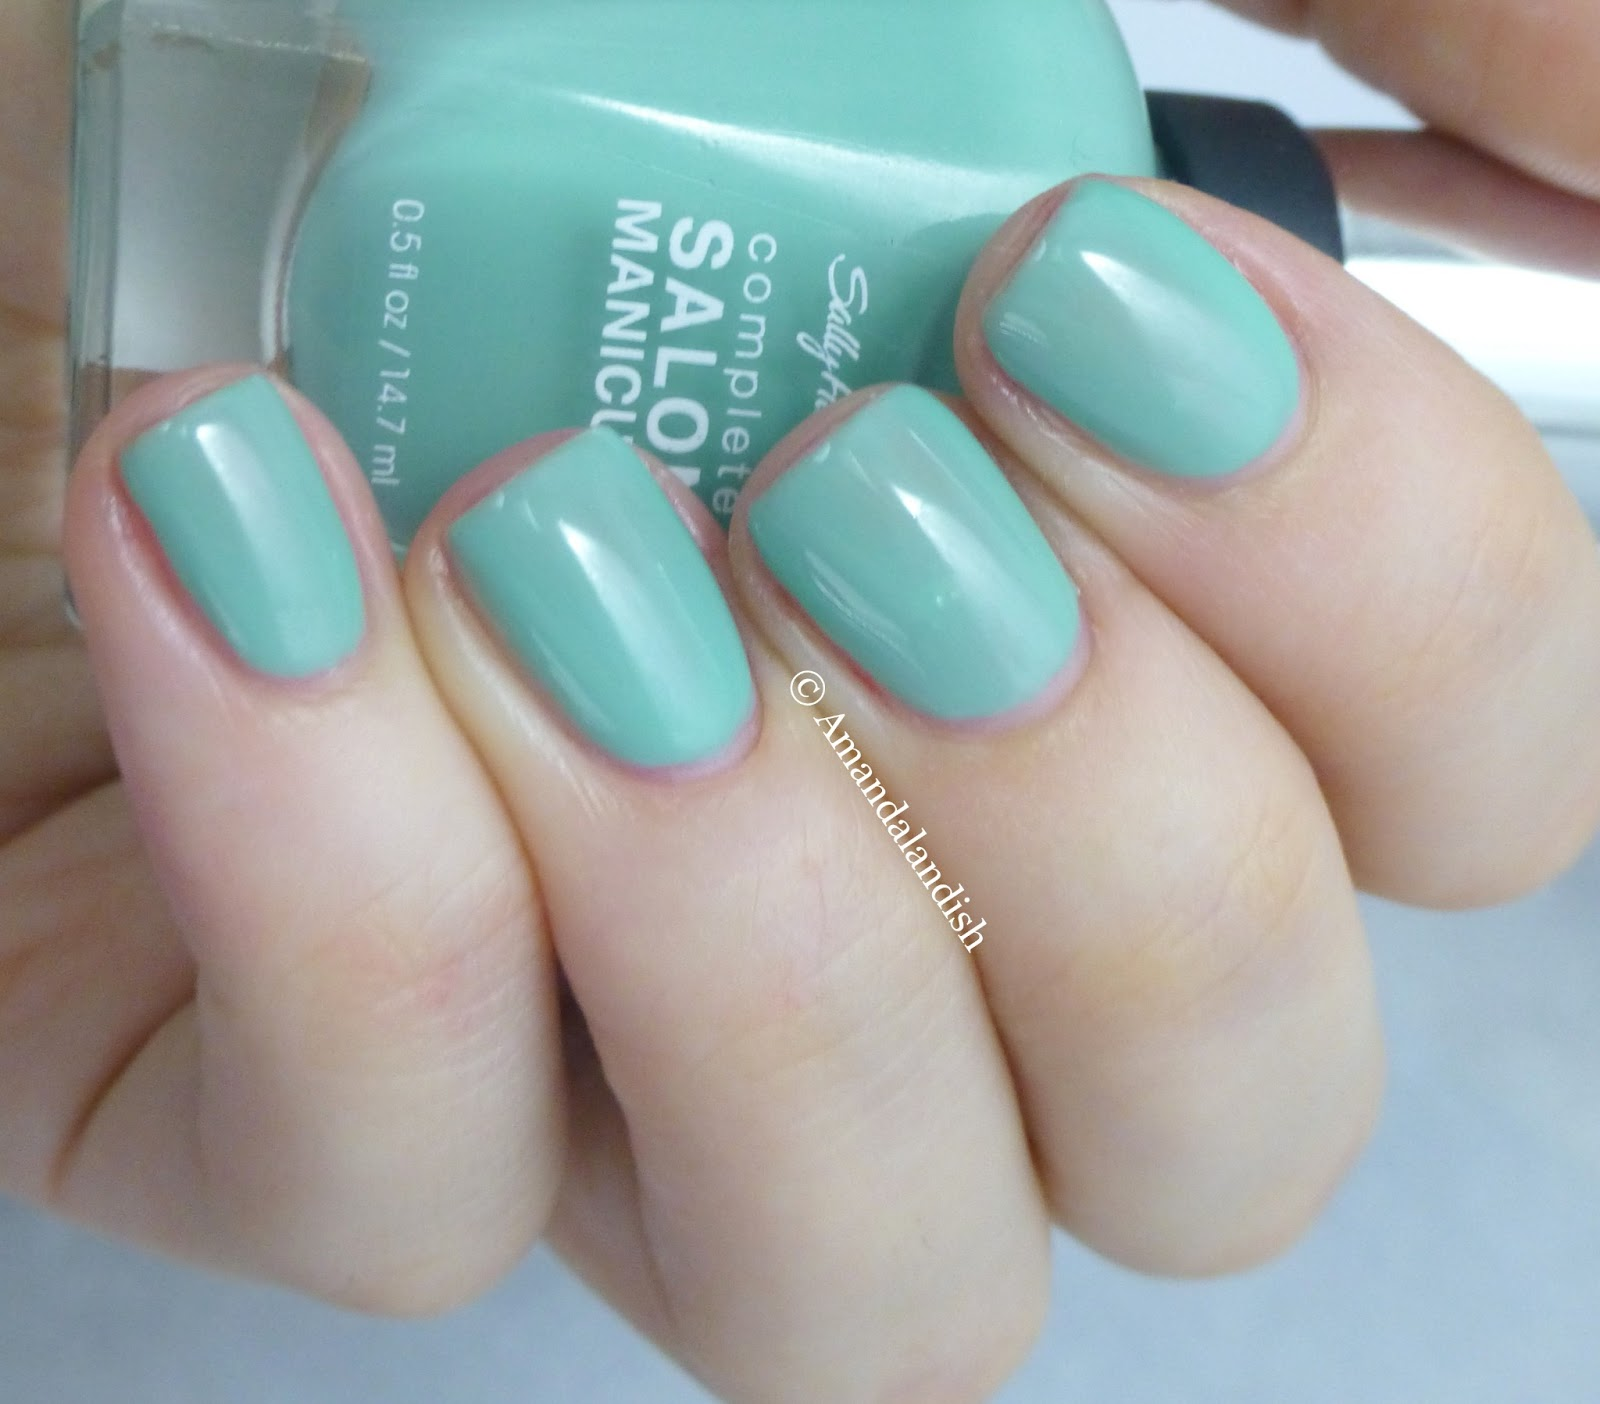 Celebrate Spring with Sally Hansen Complete Salon Manicure Sally Hansen Jaded